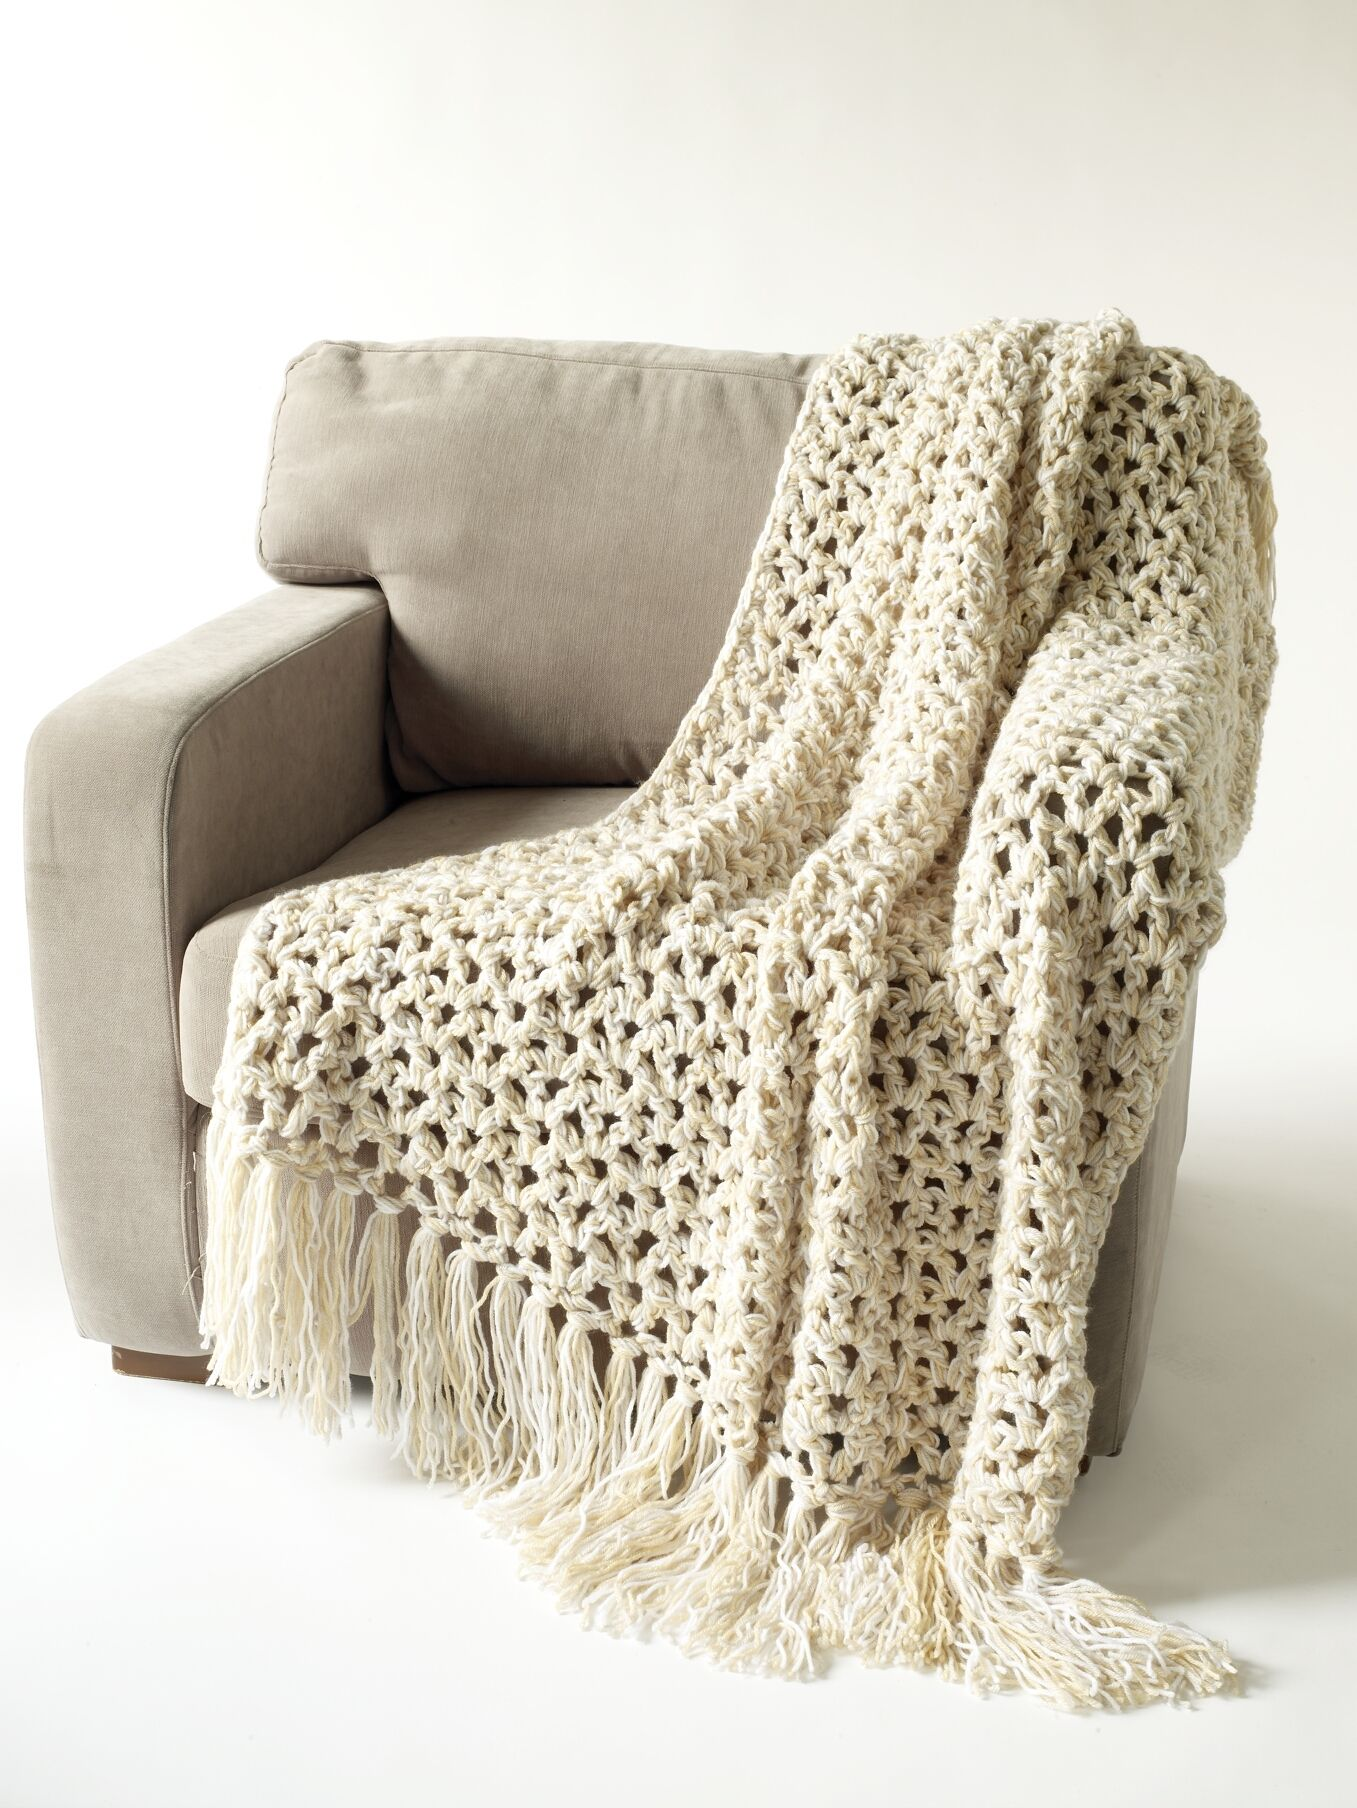 5 12 hour throw crochet pattern getting crafty pinterest 5 12 hour throw crochet pattern bankloansurffo Image collections